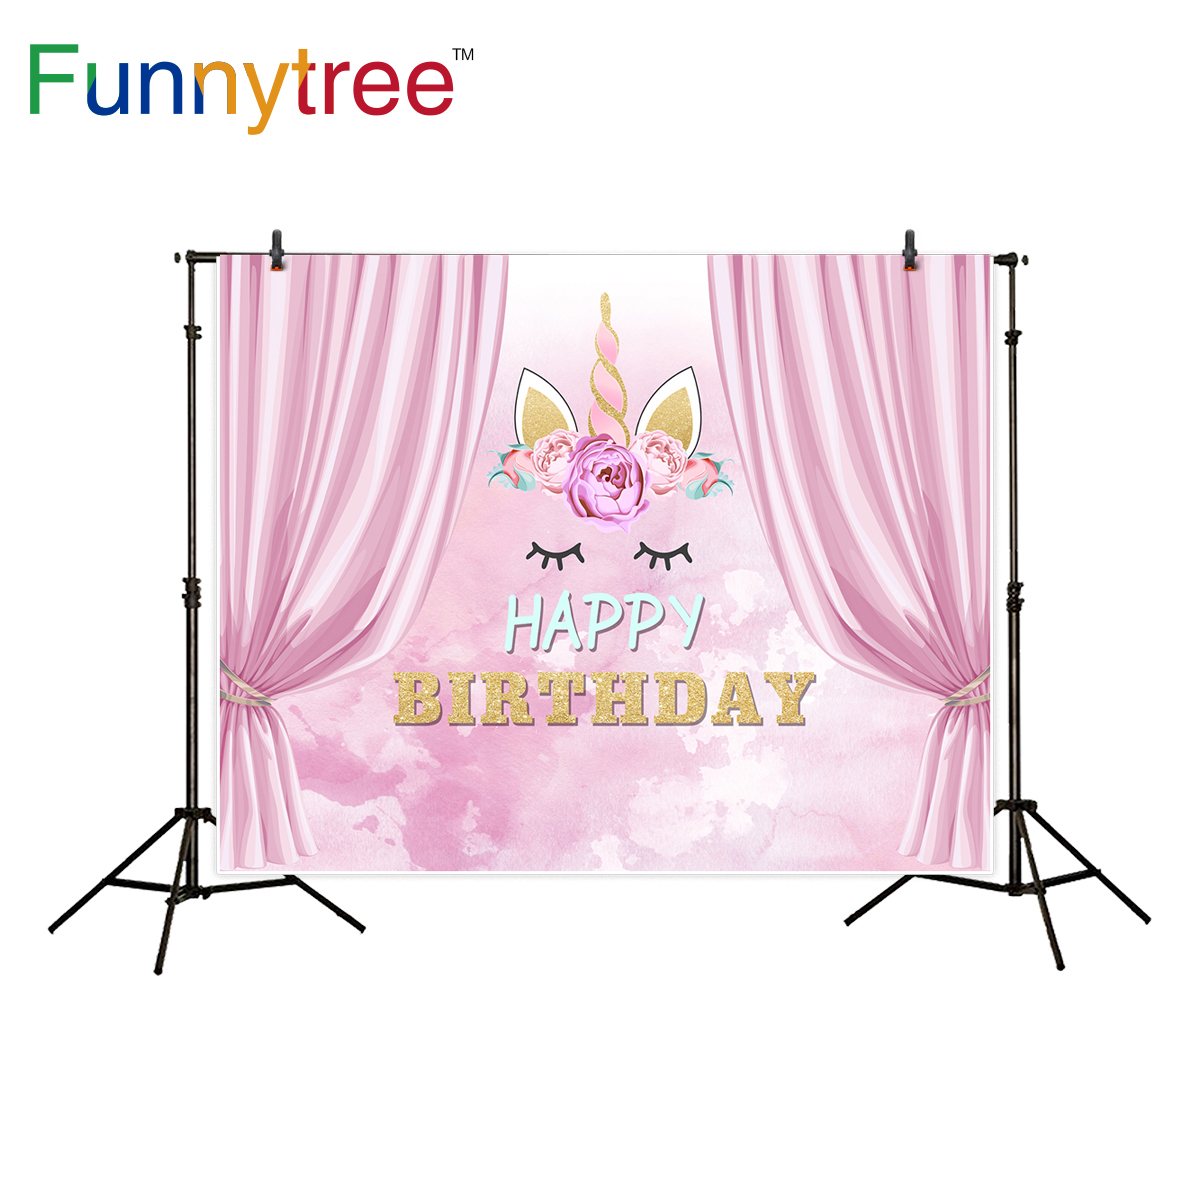 Funnytree unicorn backgrounds for photo studio birthday watercolor flower curtain photographic backdrop photocall printed